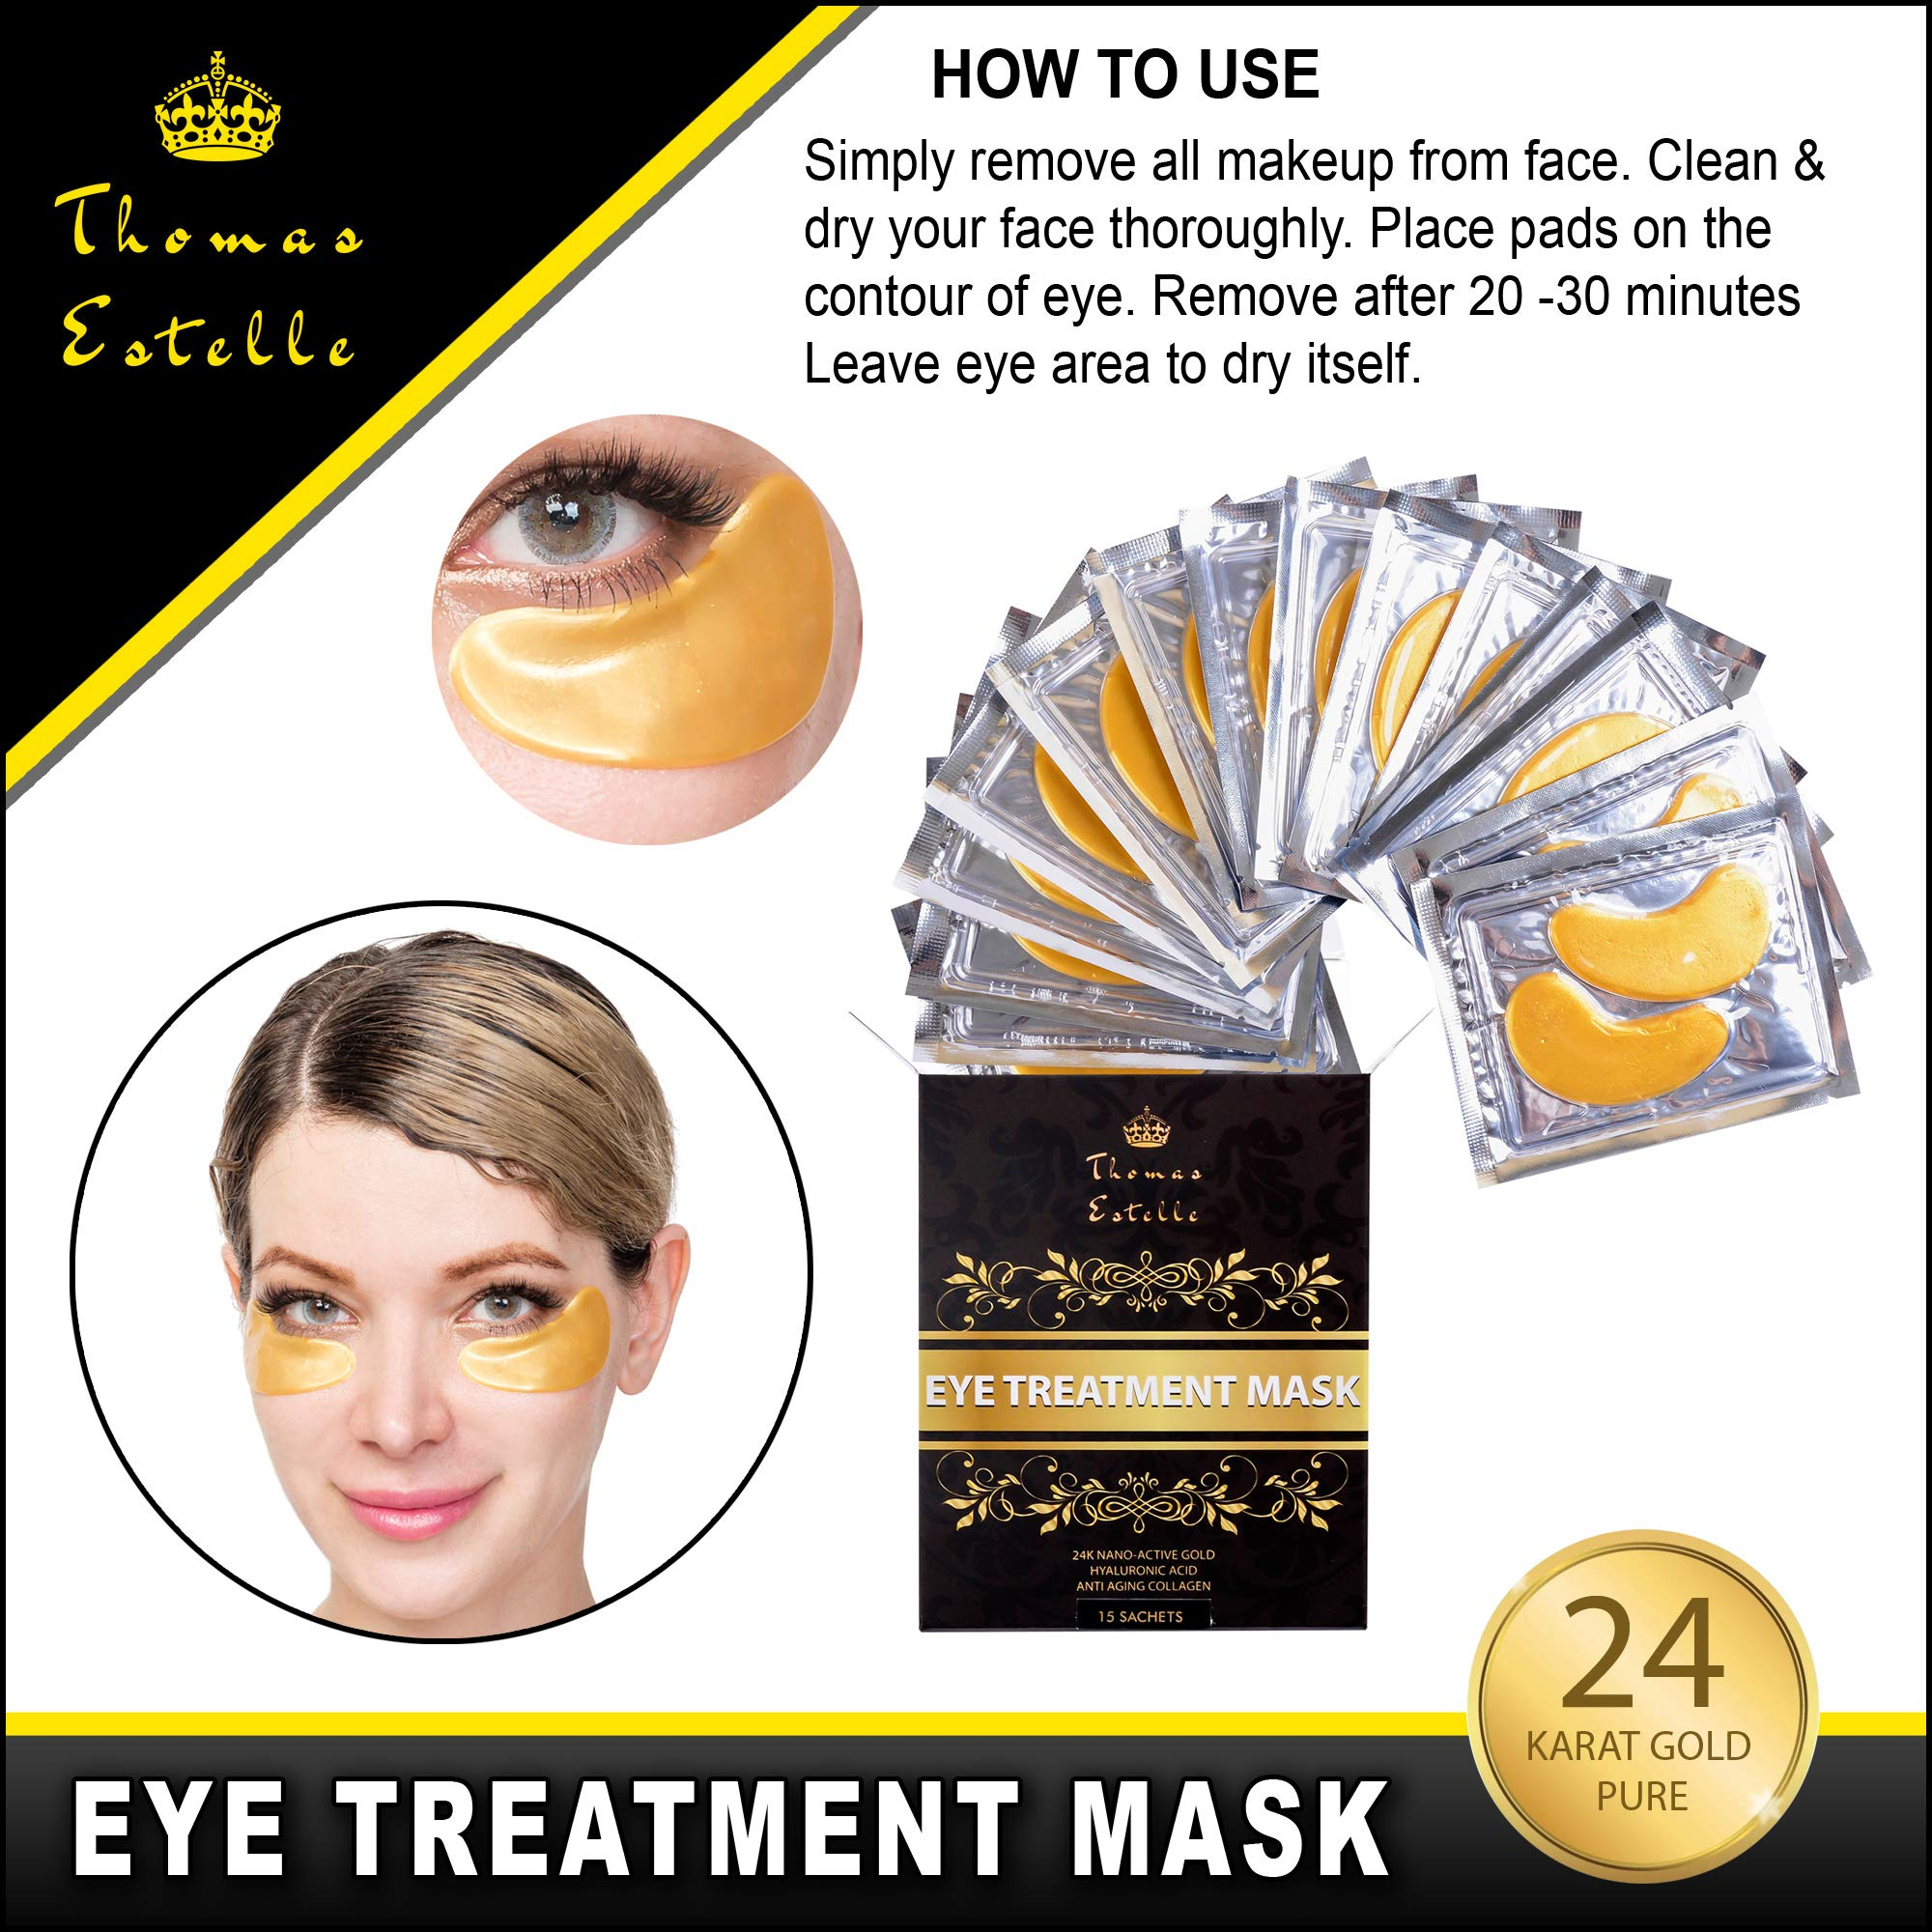 Under Eye Bags Treatment - Gel For Puffiness, Wrinkles, Dark Circles, Crows Feet, Puffy Eyes -24k Gold Luxury - The Best Natural Collagen Mask - Women And Men Masks - Anti Aging Moisturizer Pads by Thomas Estelle (Image #2)